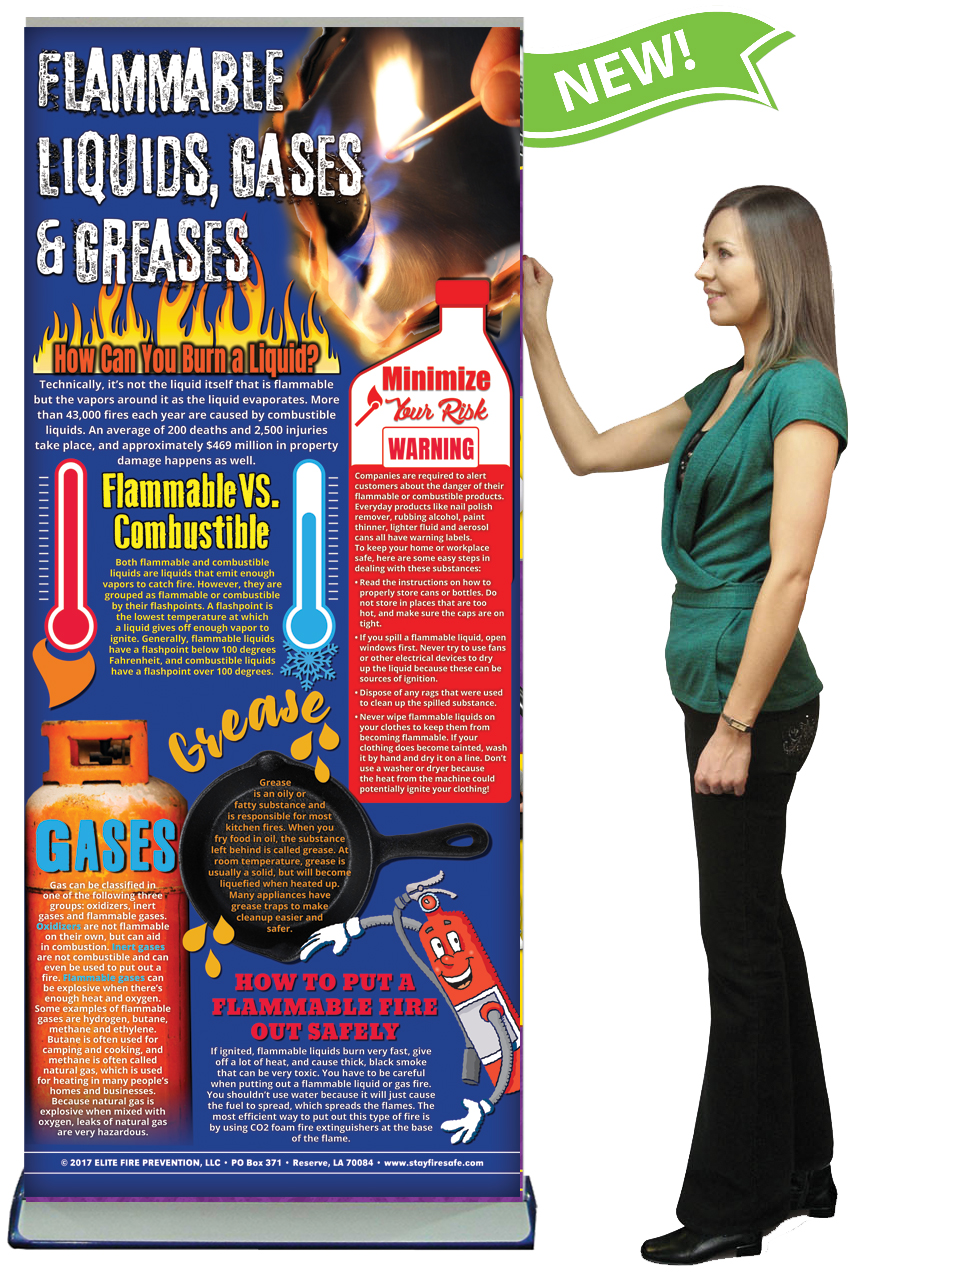 BAN-FMSS-03-Flammable-Liquids,-Gases,-&-Greases-BANNER-NEW-FLAG-with-LADY